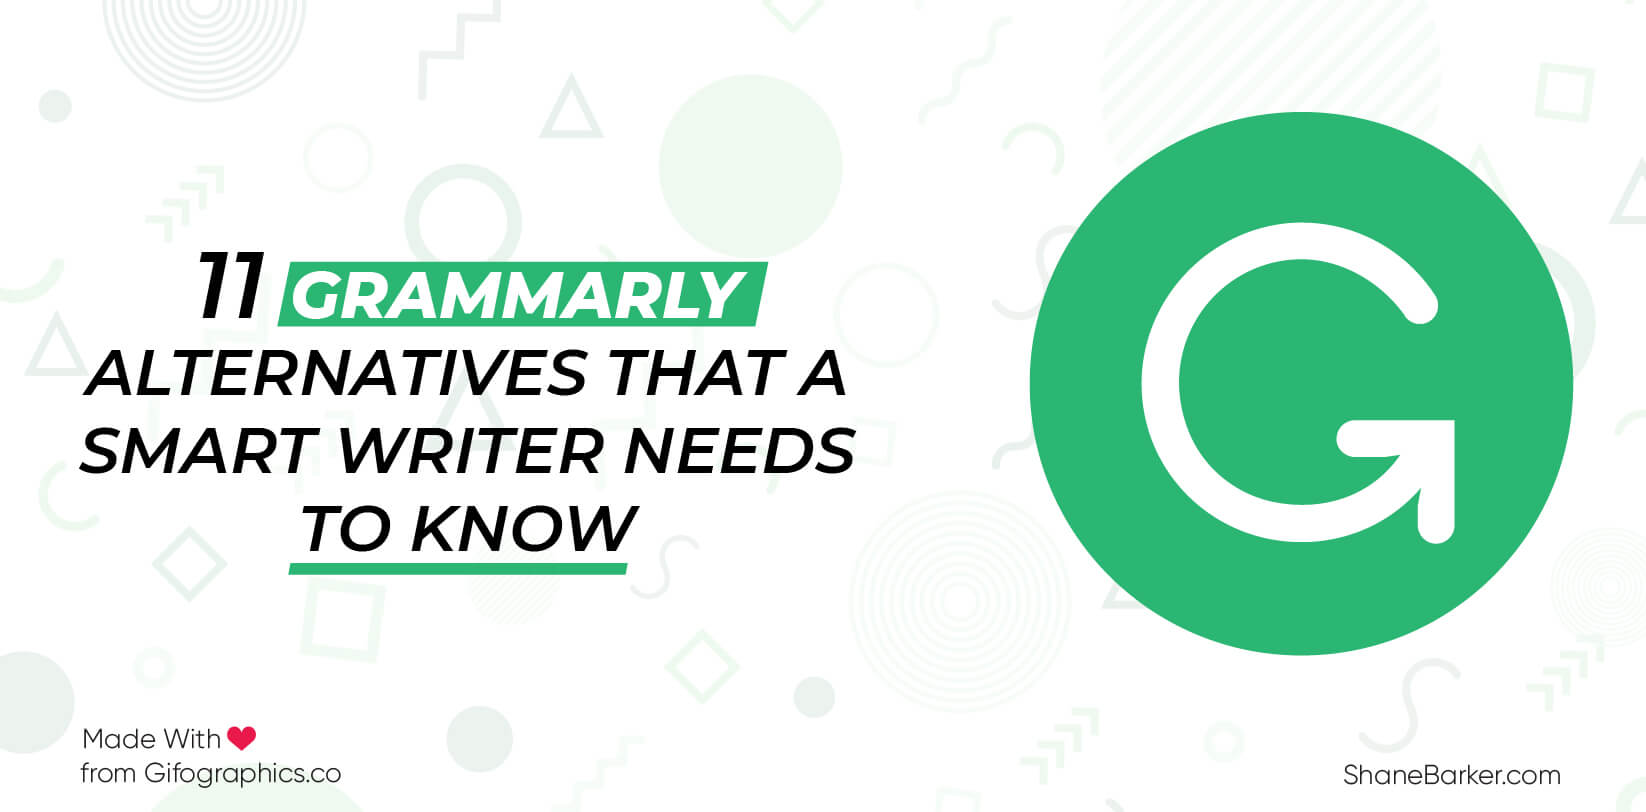 Things about Grammarly Alternative